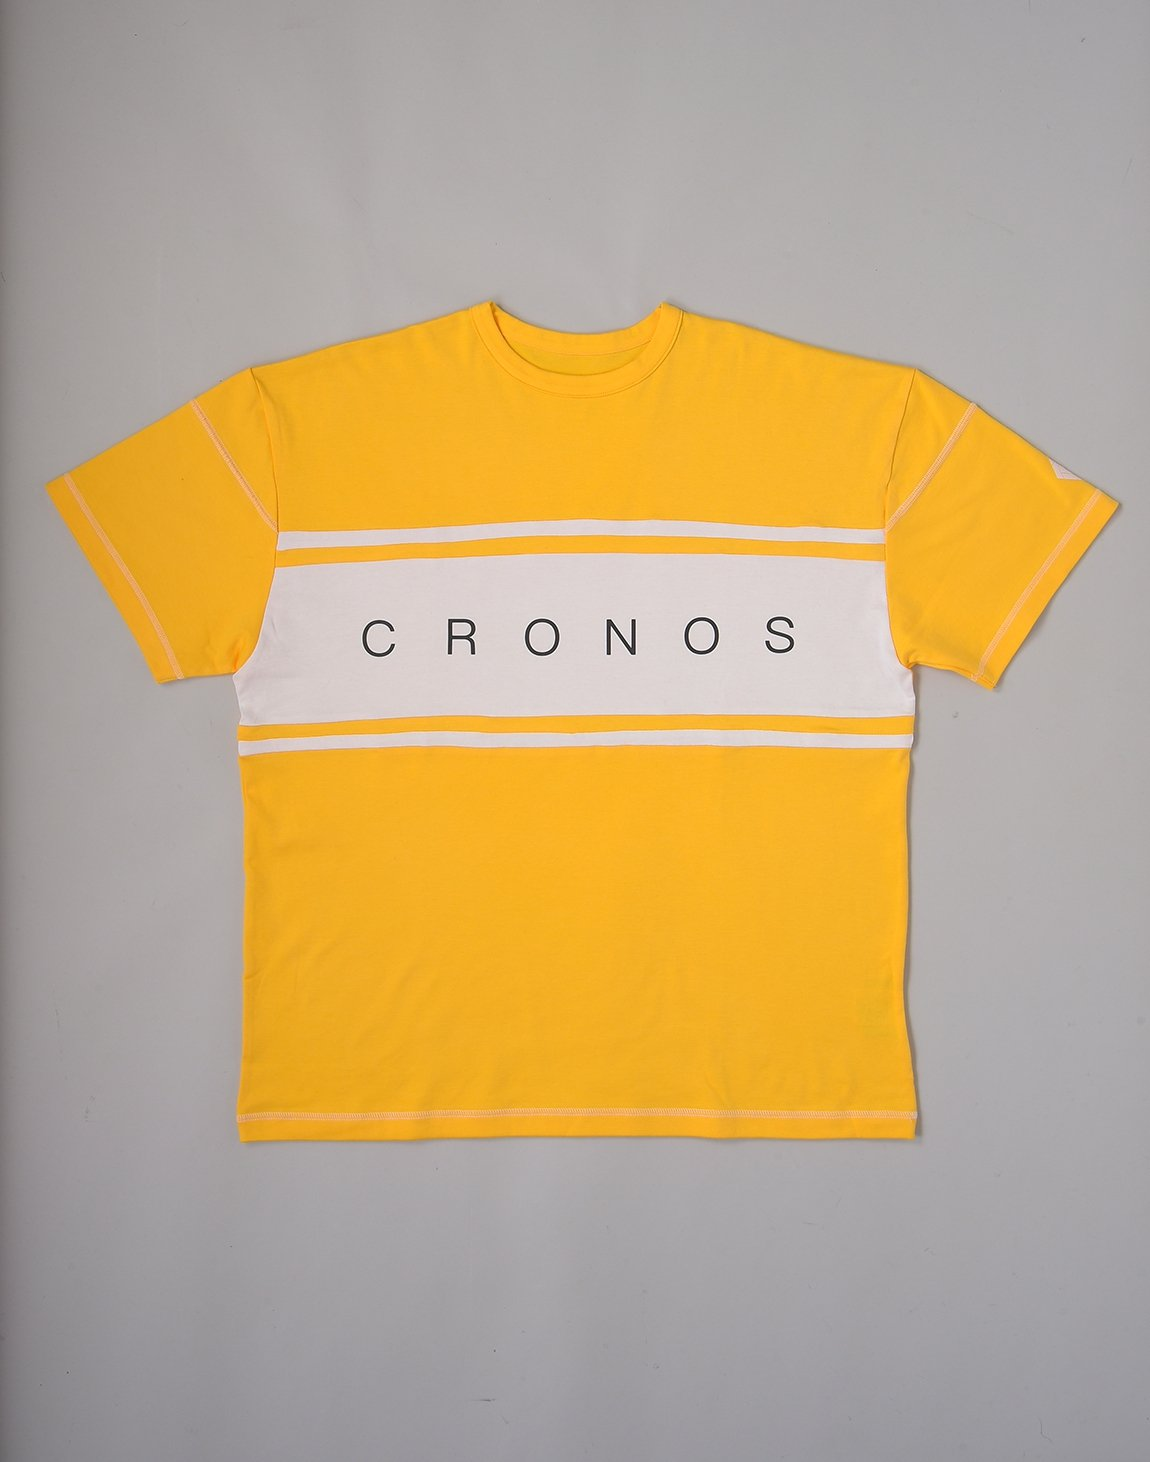 <img class='new_mark_img1' src='https://img.shop-pro.jp/img/new/icons1.gif' style='border:none;display:inline;margin:0px;padding:0px;width:auto;' />CRONOS BANNER LOGO OVERSIZE T-SHIRTS【YELLOW】